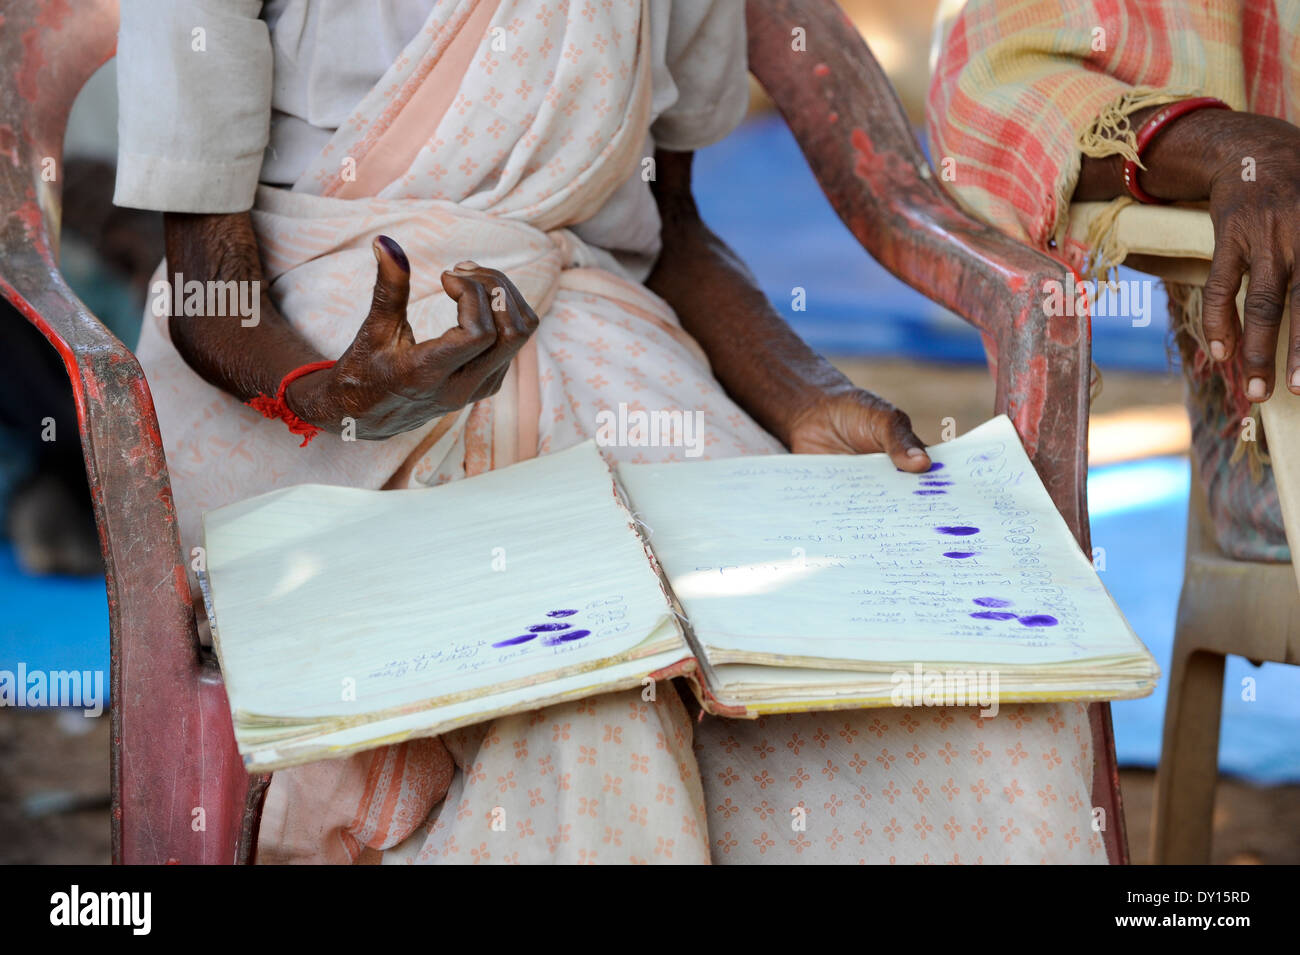 INDIA Jharkhand, NGO Birsa organize Adivasi to fight for their land rights, meeting in village, women sign with thumb print - Stock Image